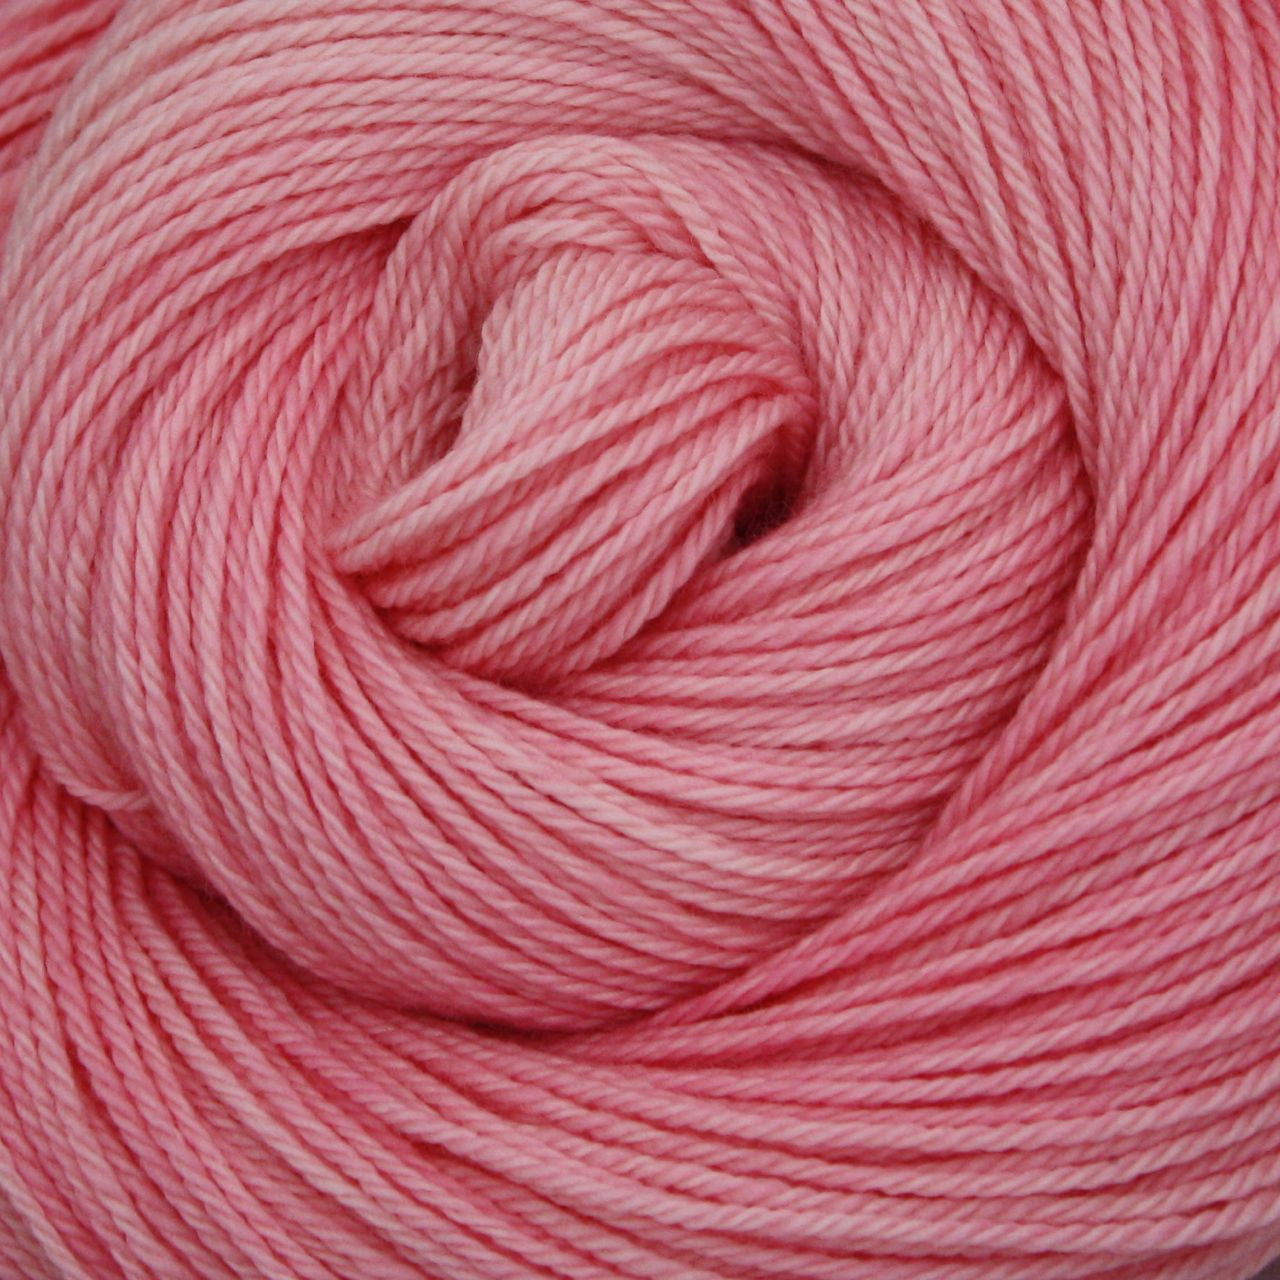 Colorway: Watermelon | Dyed to Order Yarn